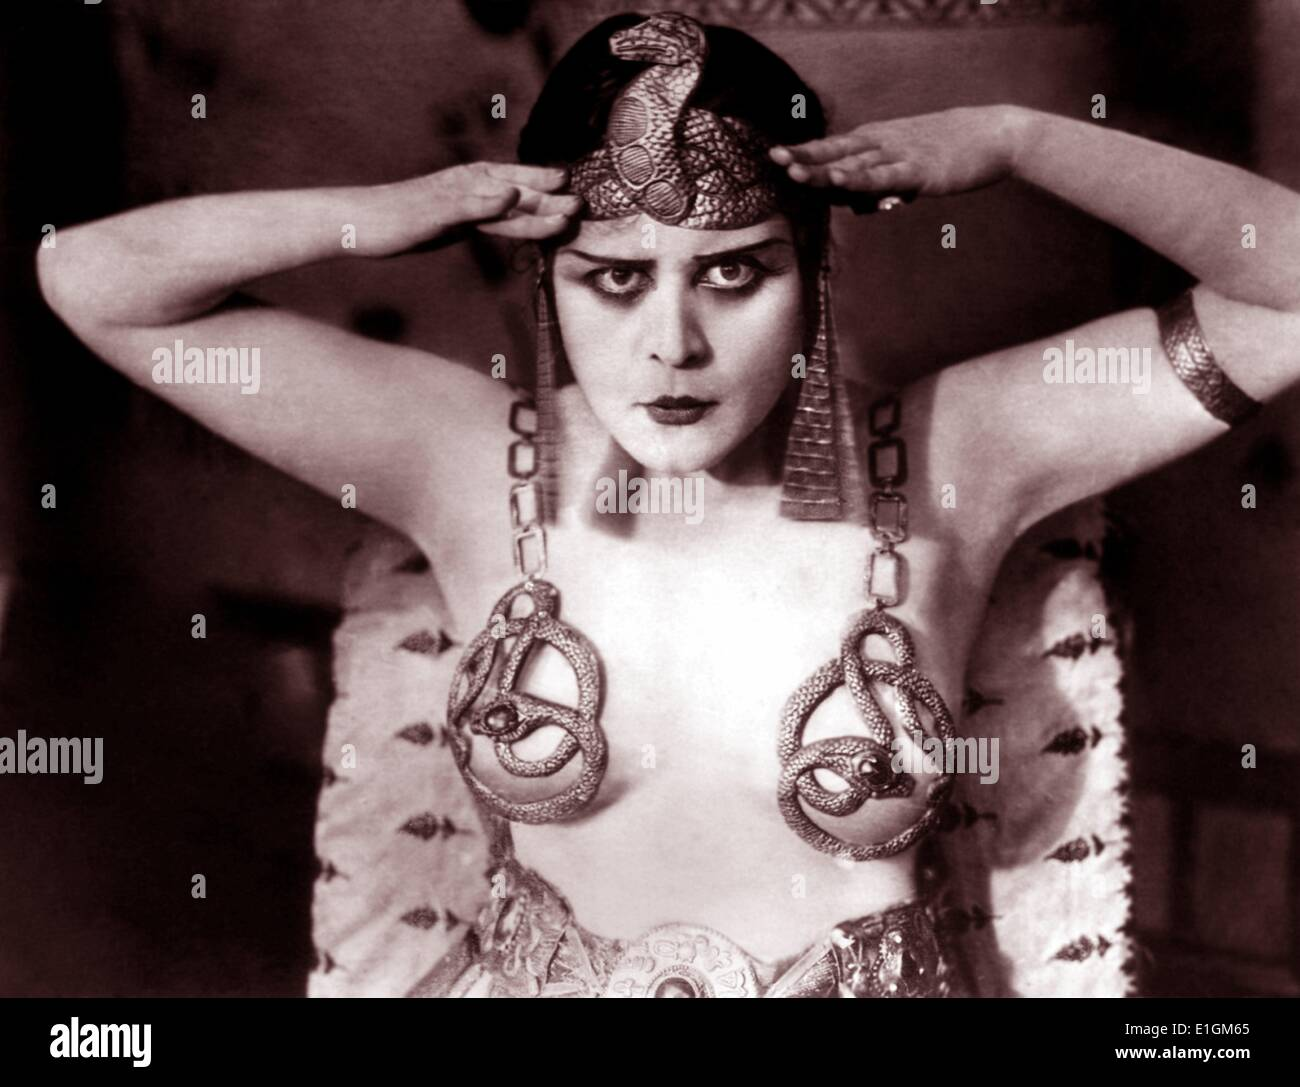 Publicity photo of Theda Bara for the 1917 movie Cleopatra - Stock Image